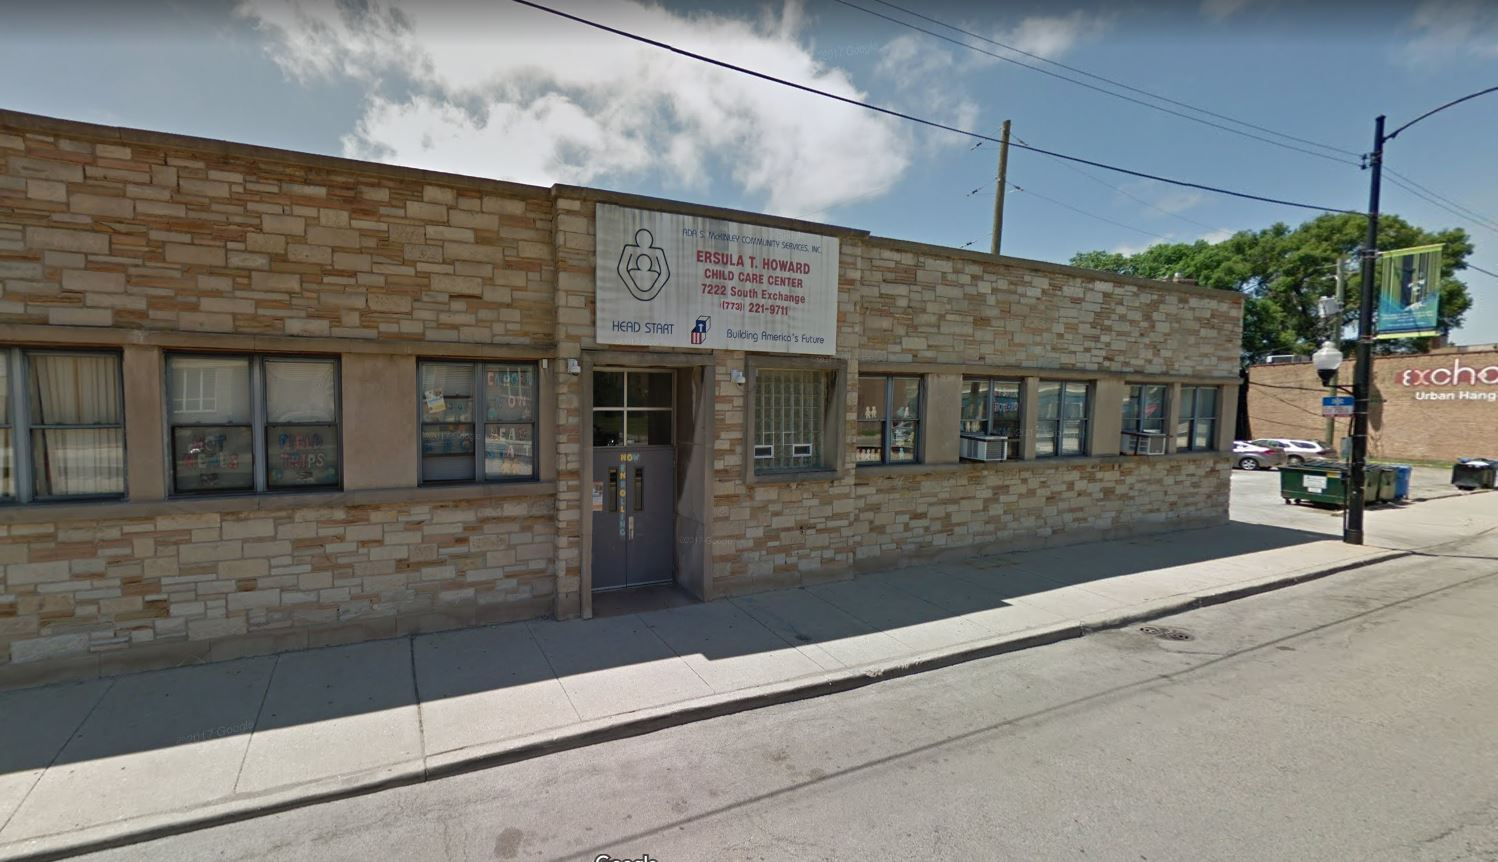 featured image Ada S. McKinley Community Services, Inc.: Ersula T. Howard Child Care Center